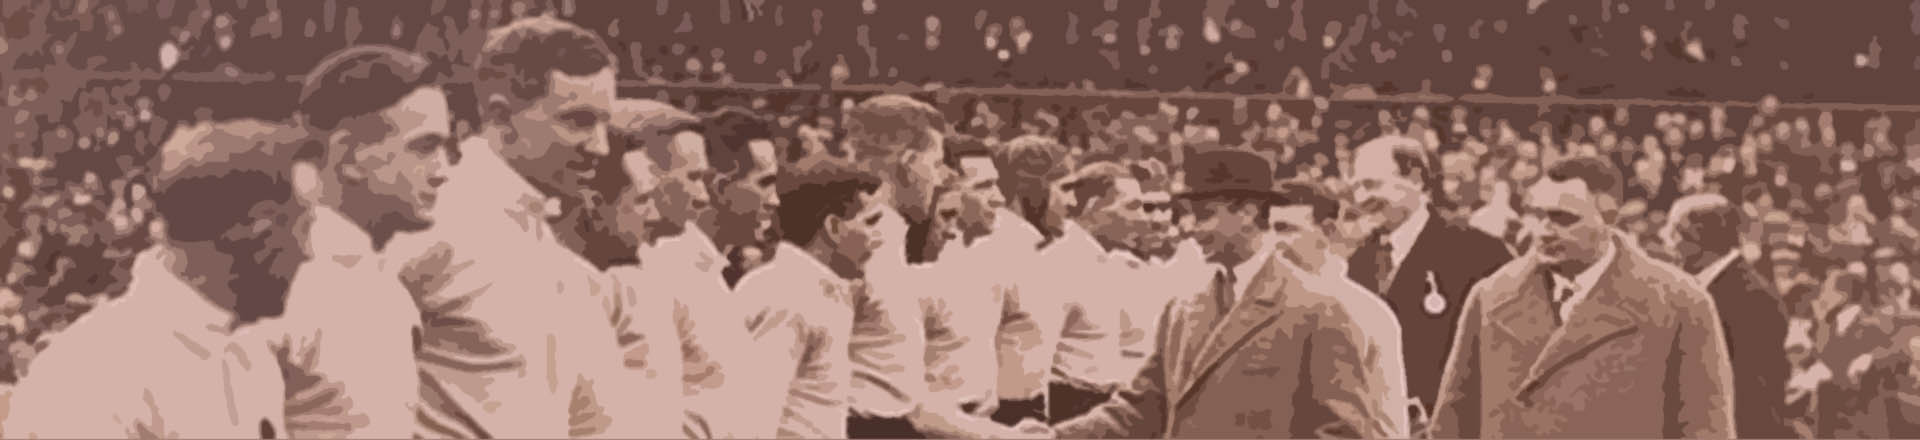 The Waratahs at Twickenham 1928.